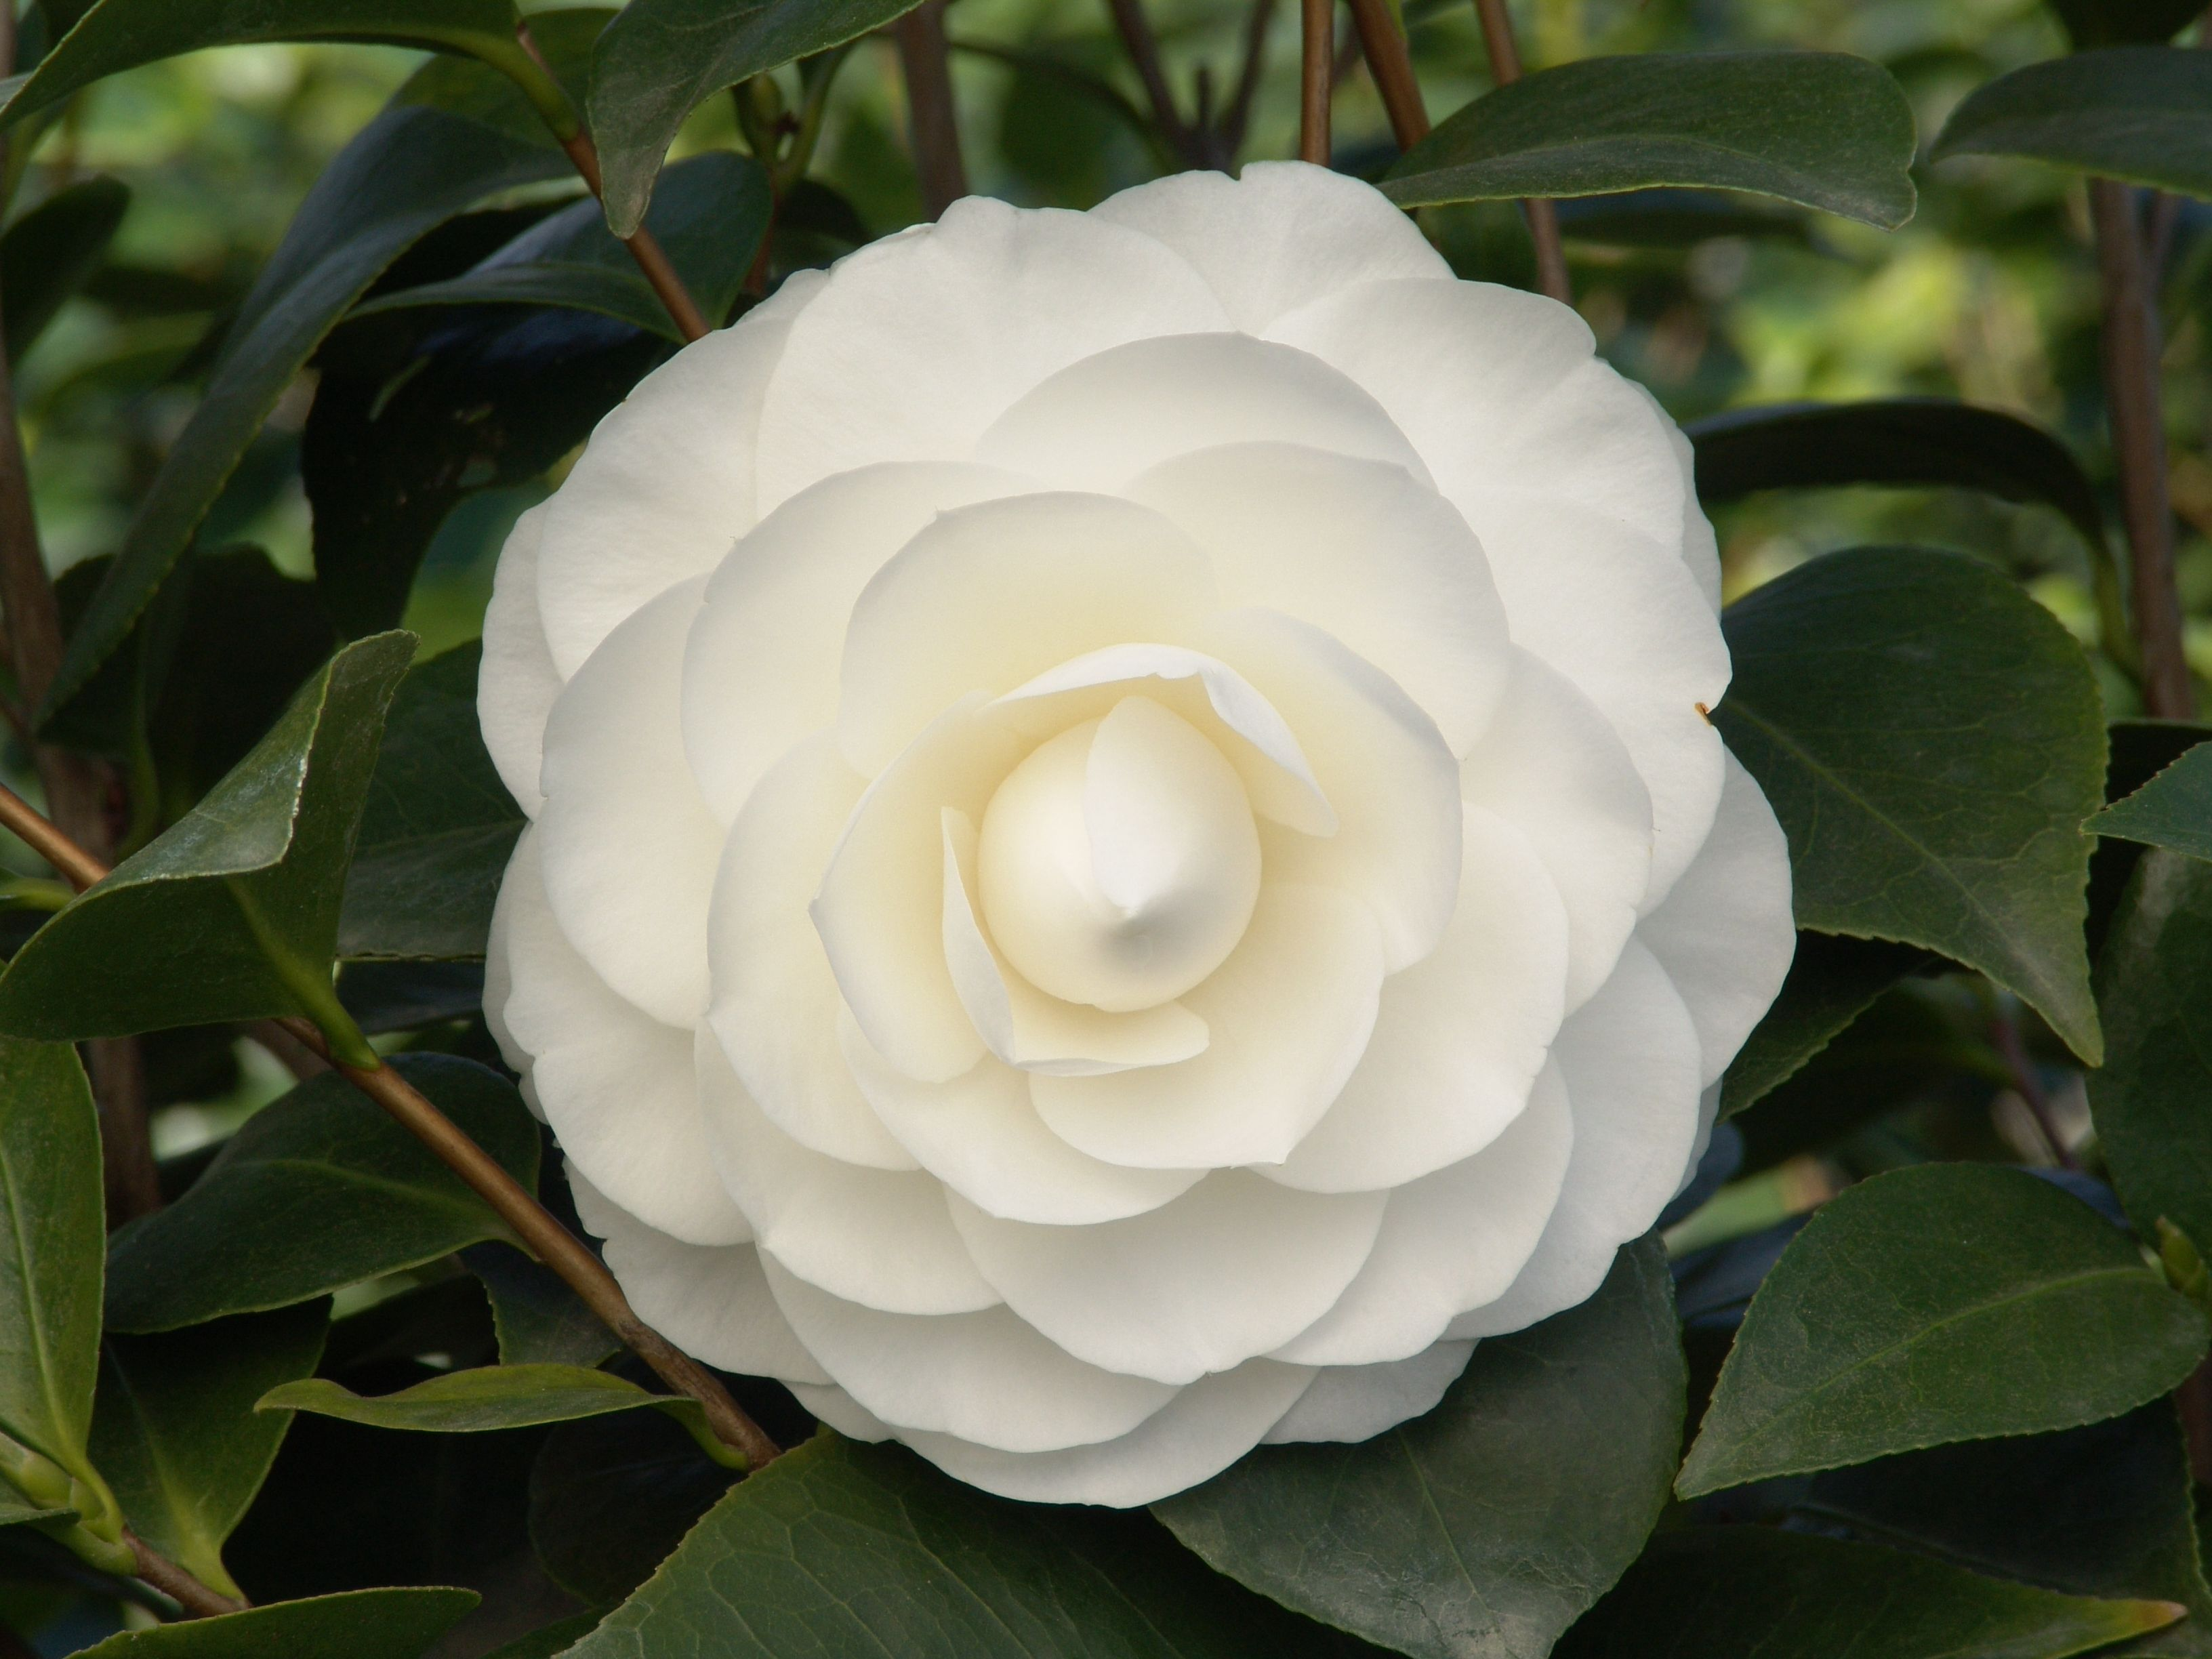 Nuccio S Gem Camellia S Sparkling White Formal Double Blooms Contrast Well With The Glossy Dark Green Foliage Filter Camellia Flower Perfect Plants Flowers